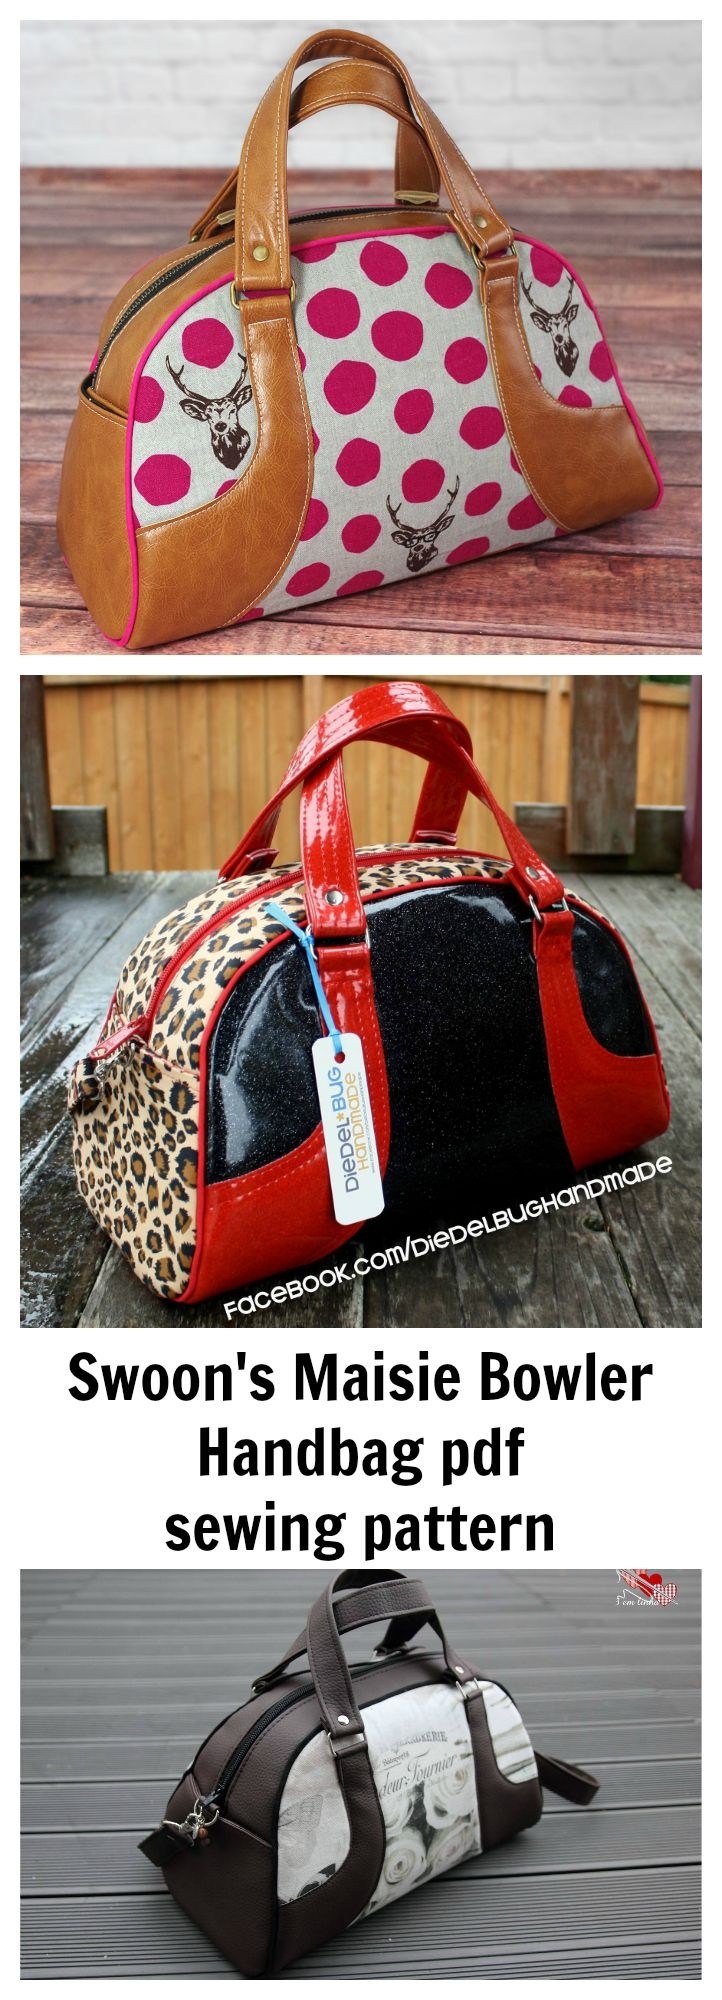 Here is Swoon's Maisie Bowler Handbag downloadable pdf sewing pattern.